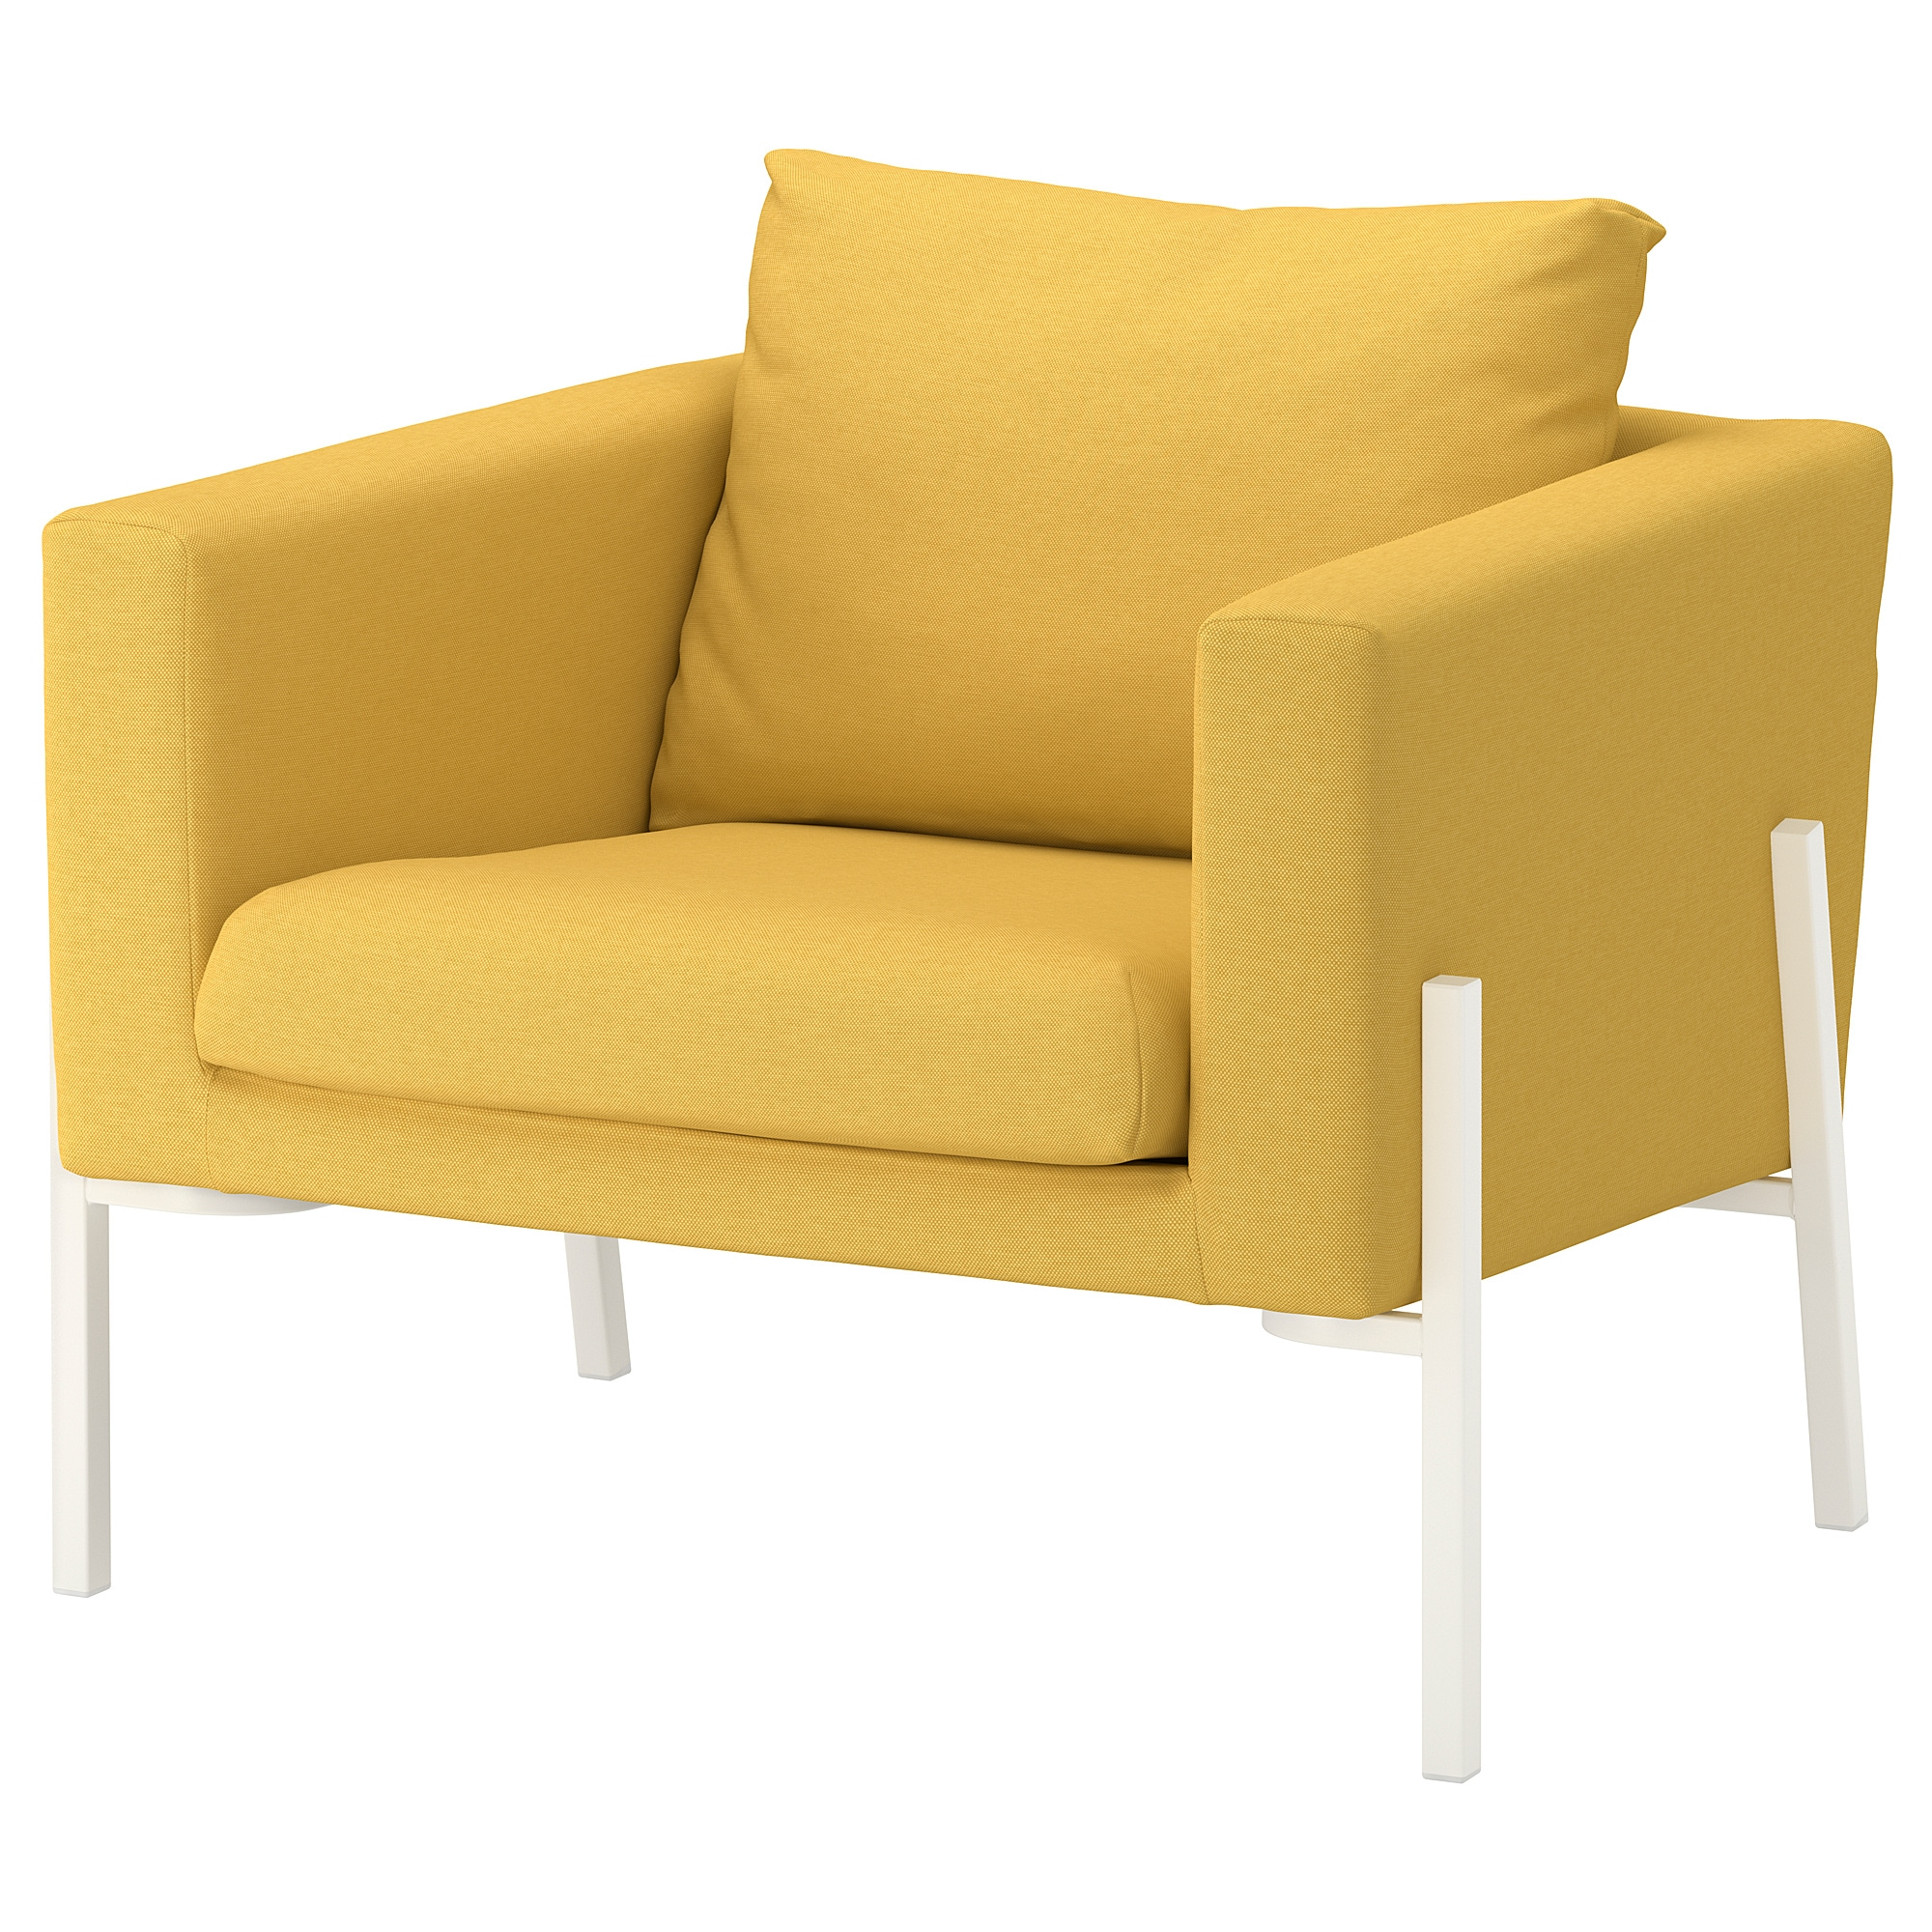 cat home online in chair india buy p chairs nilkamal at yellow novella